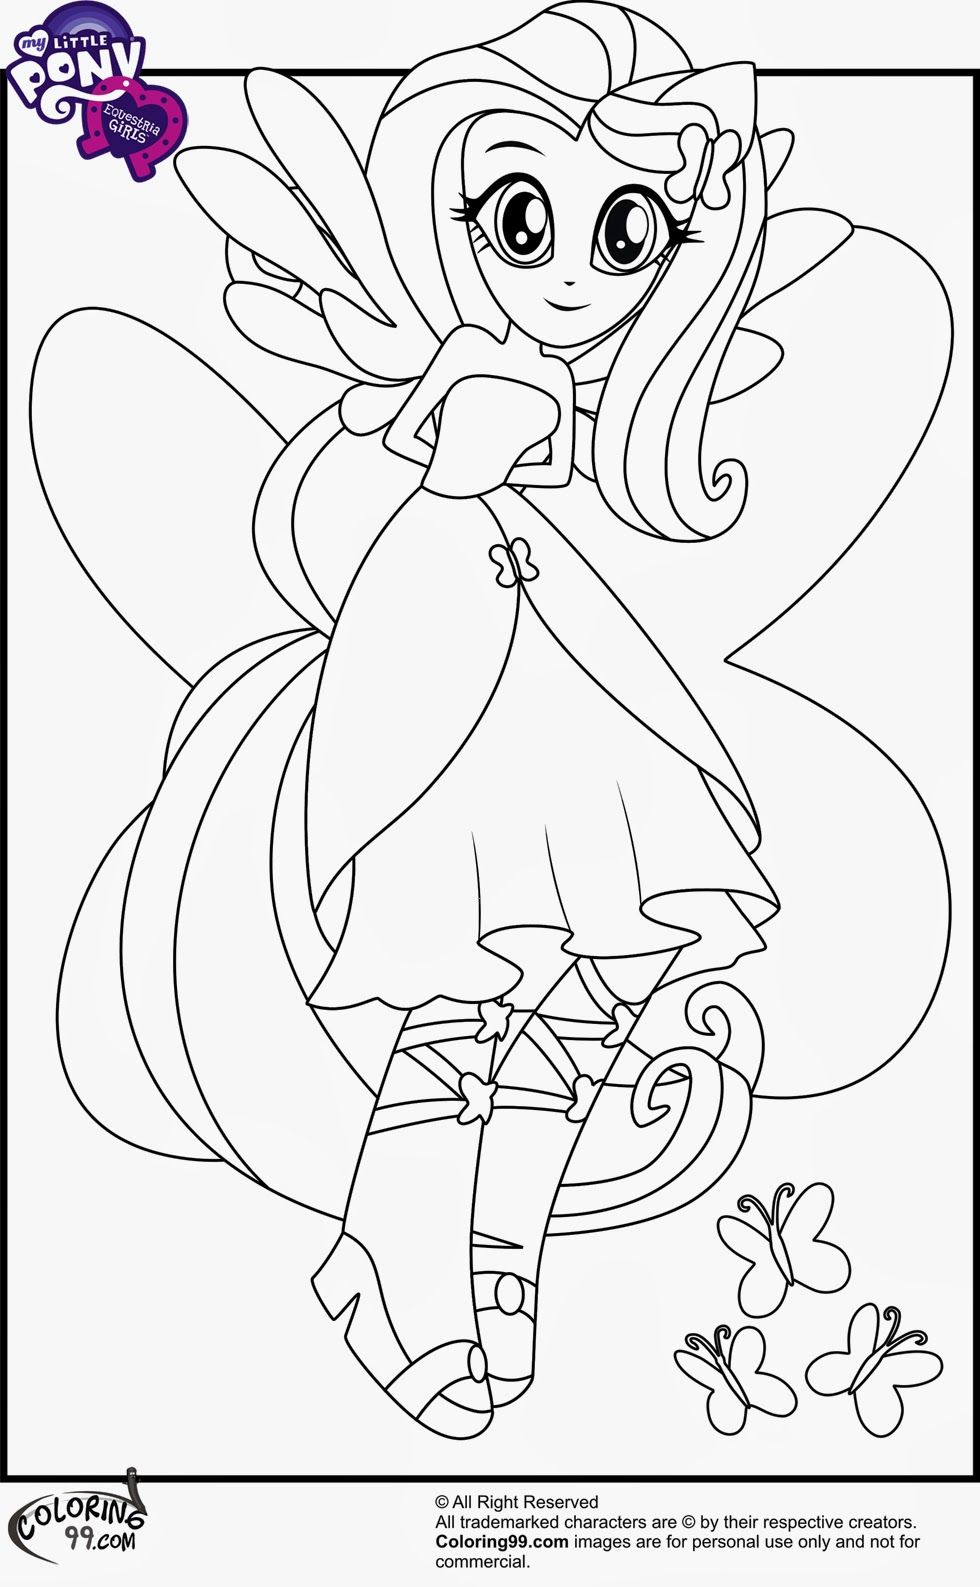 Ausmalbilder My Little Pony Der Film : Mlp Equestria Girls Coloring Pages Equestria Girls Im Genes